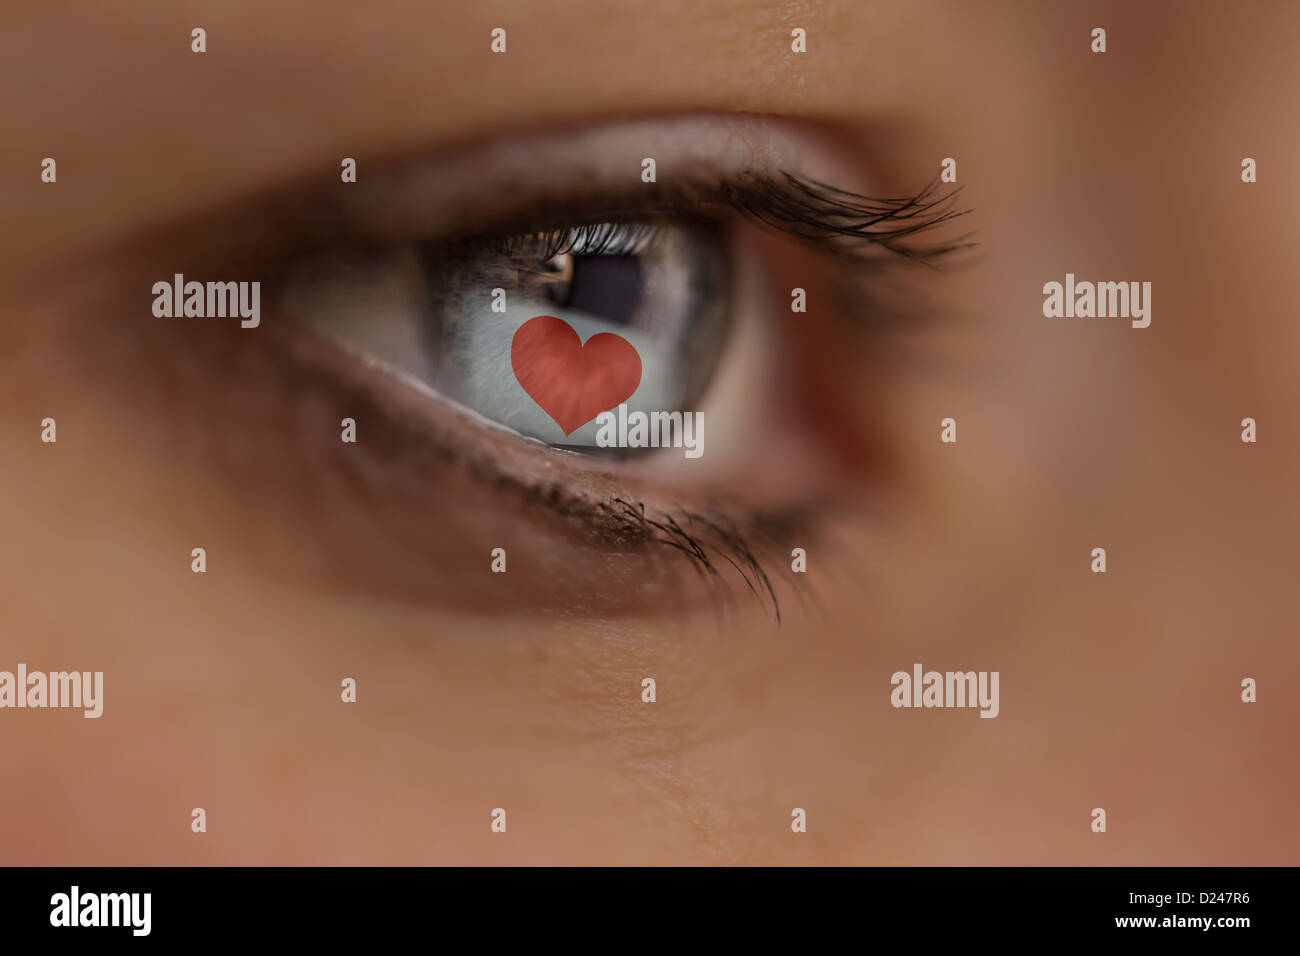 Woman looking at Internet site with a heart. Symbol online dating agency, cyber love - Stock Image